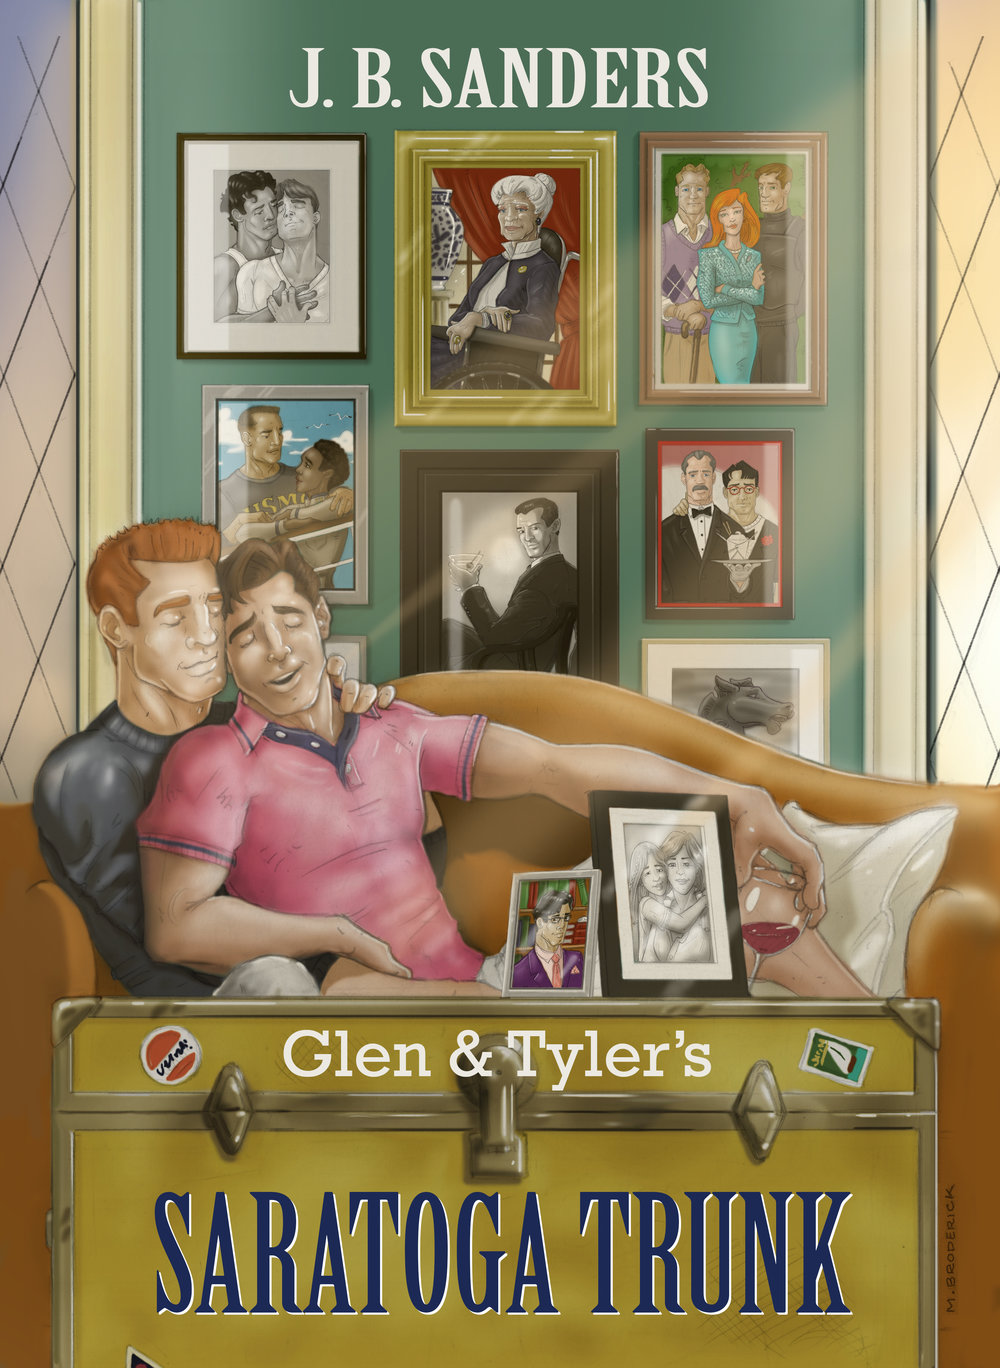 Glen & Tyler's fifth adventure.